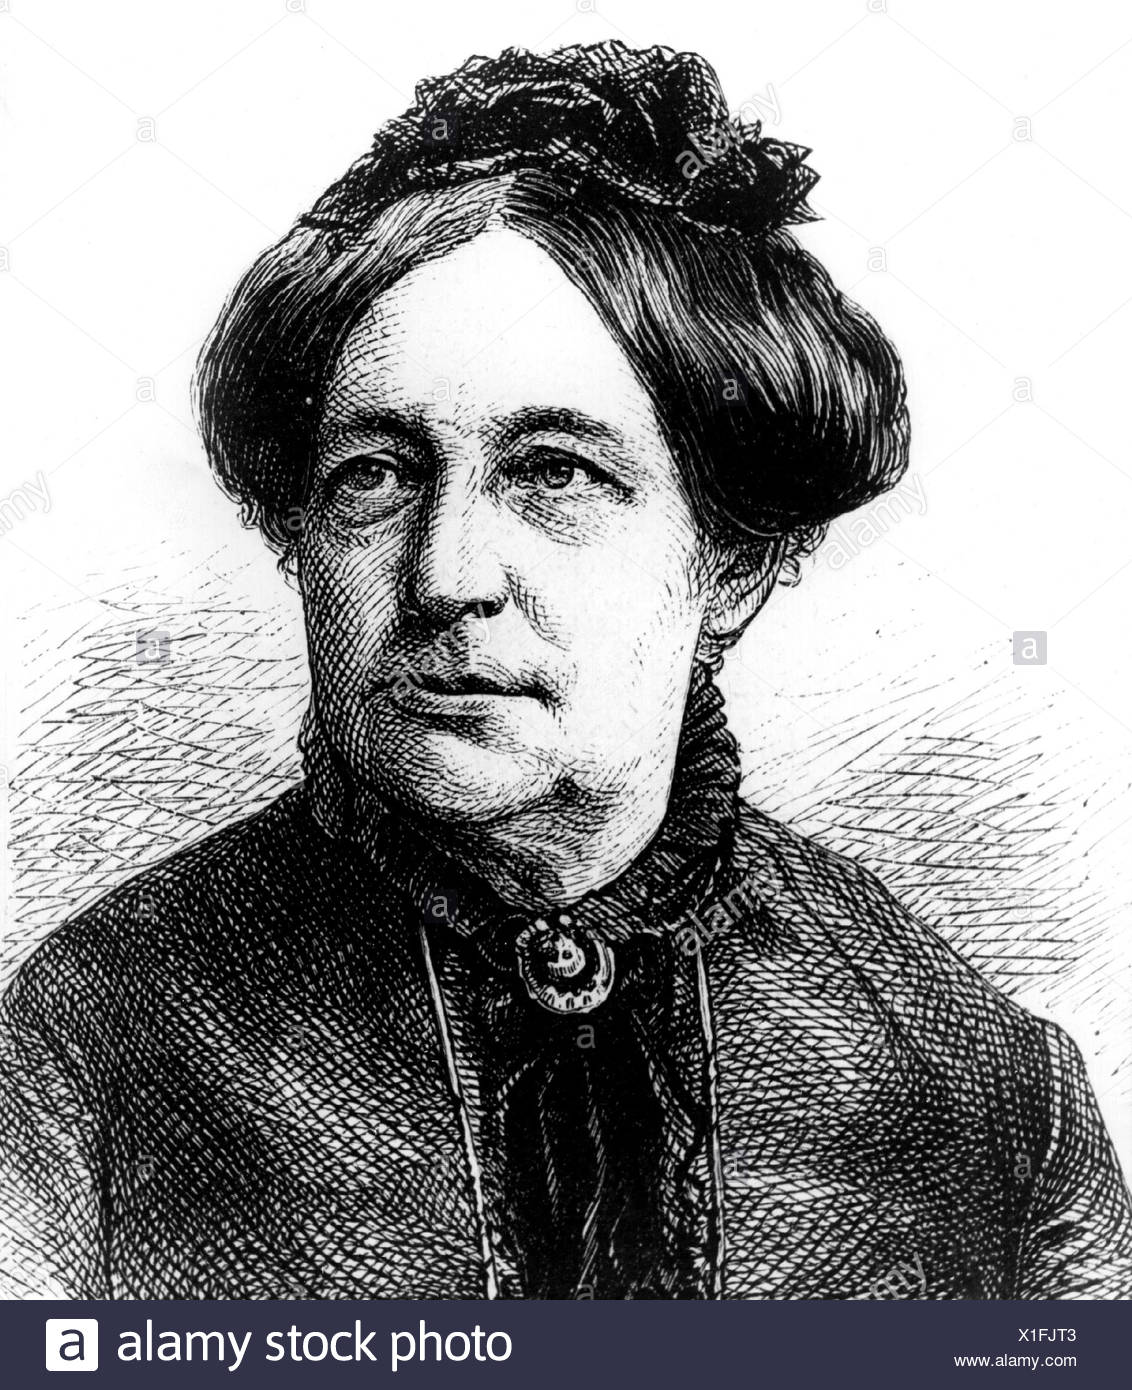 Otto-Peters, Luise, 26.3.1819 - 13.3.1895, German author / writer, feminist, portrait, wood engraving, 19th century, Additional-Rights-Clearances-NA - Stock Image